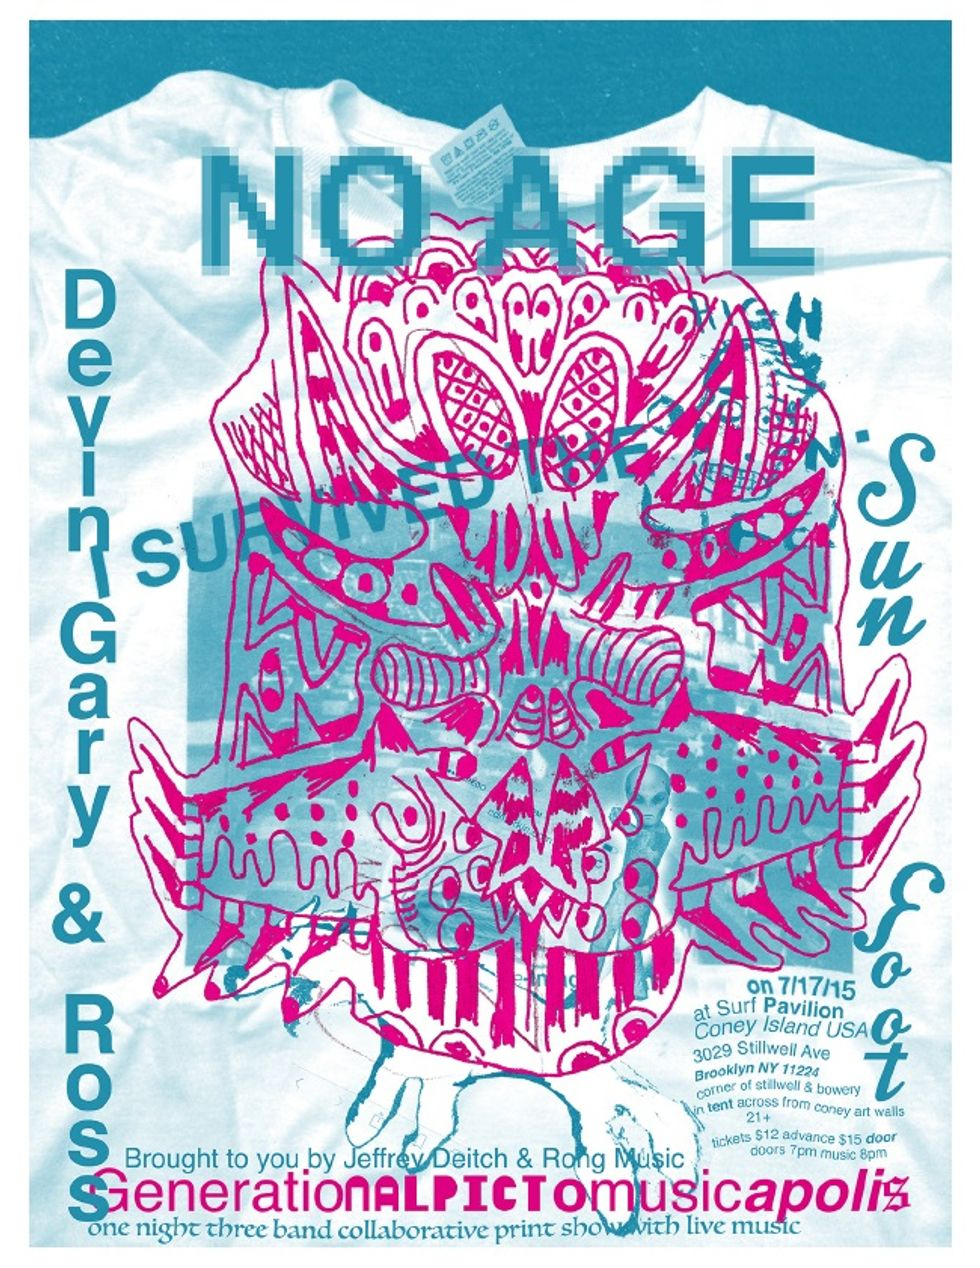 Get Some Art and Music From Chris Johanson and No Age at Coney Island